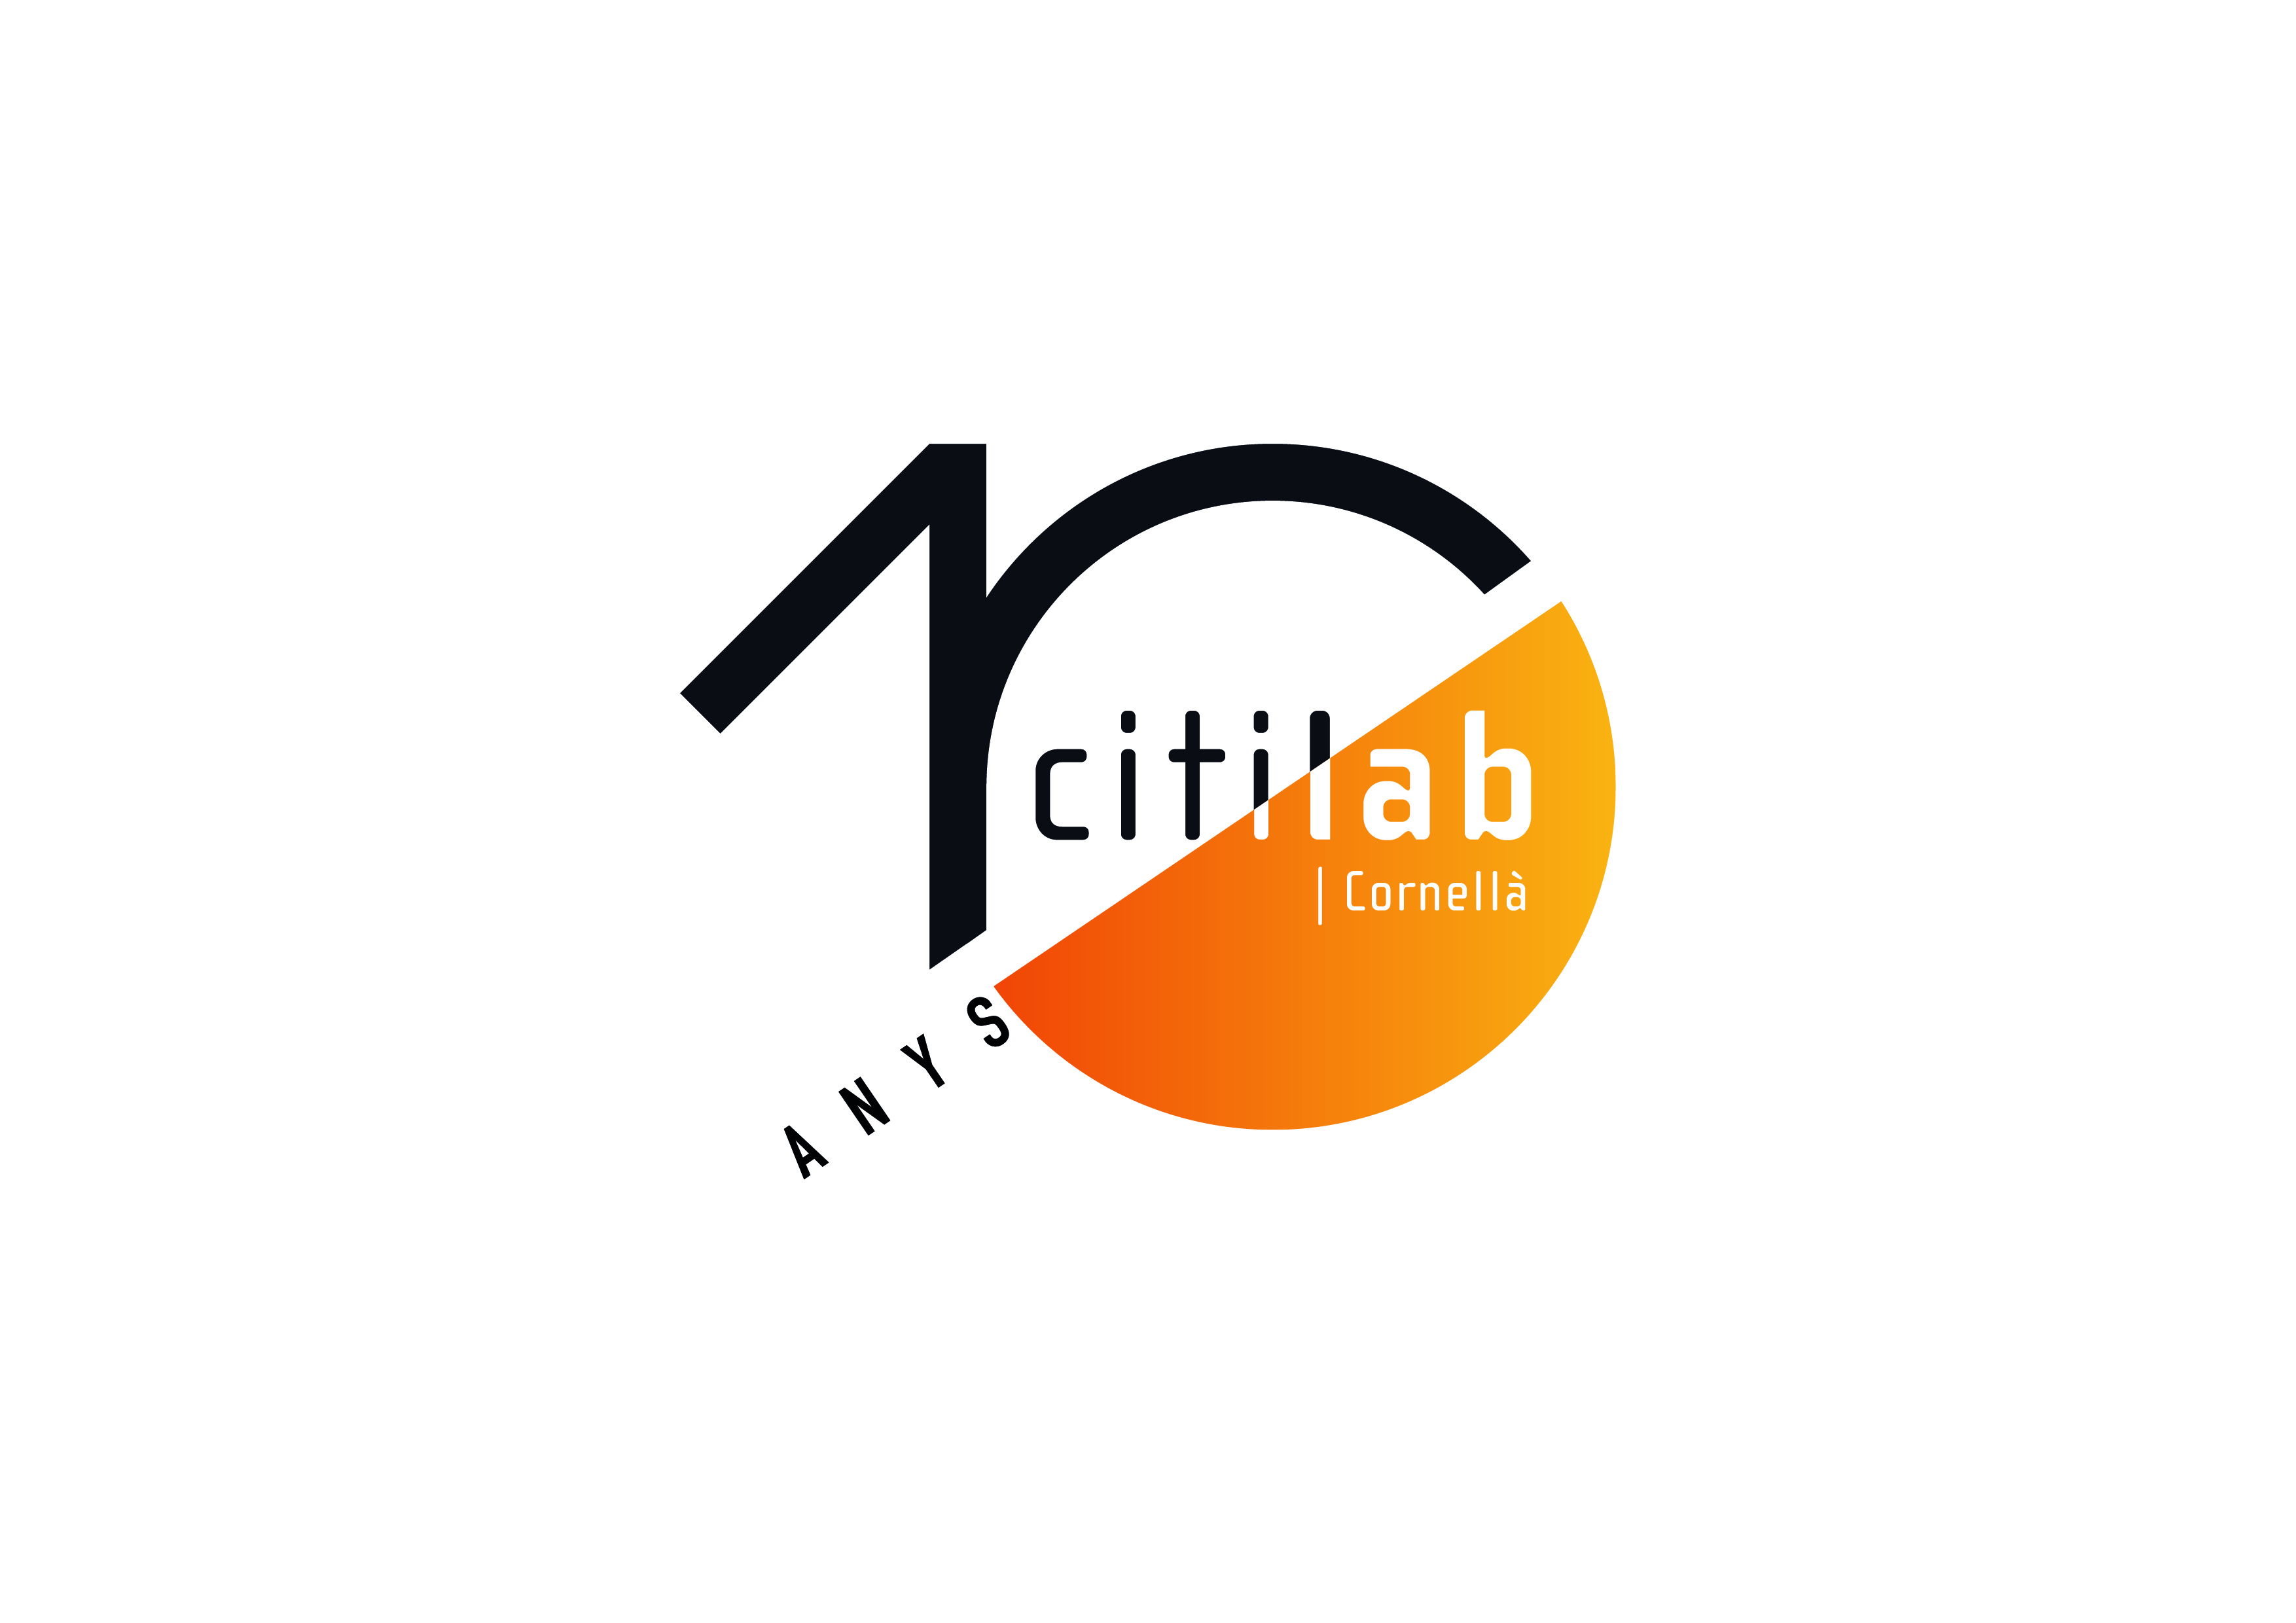 Come And Celebrate The 10th Anniversary Of Citilab With Us!